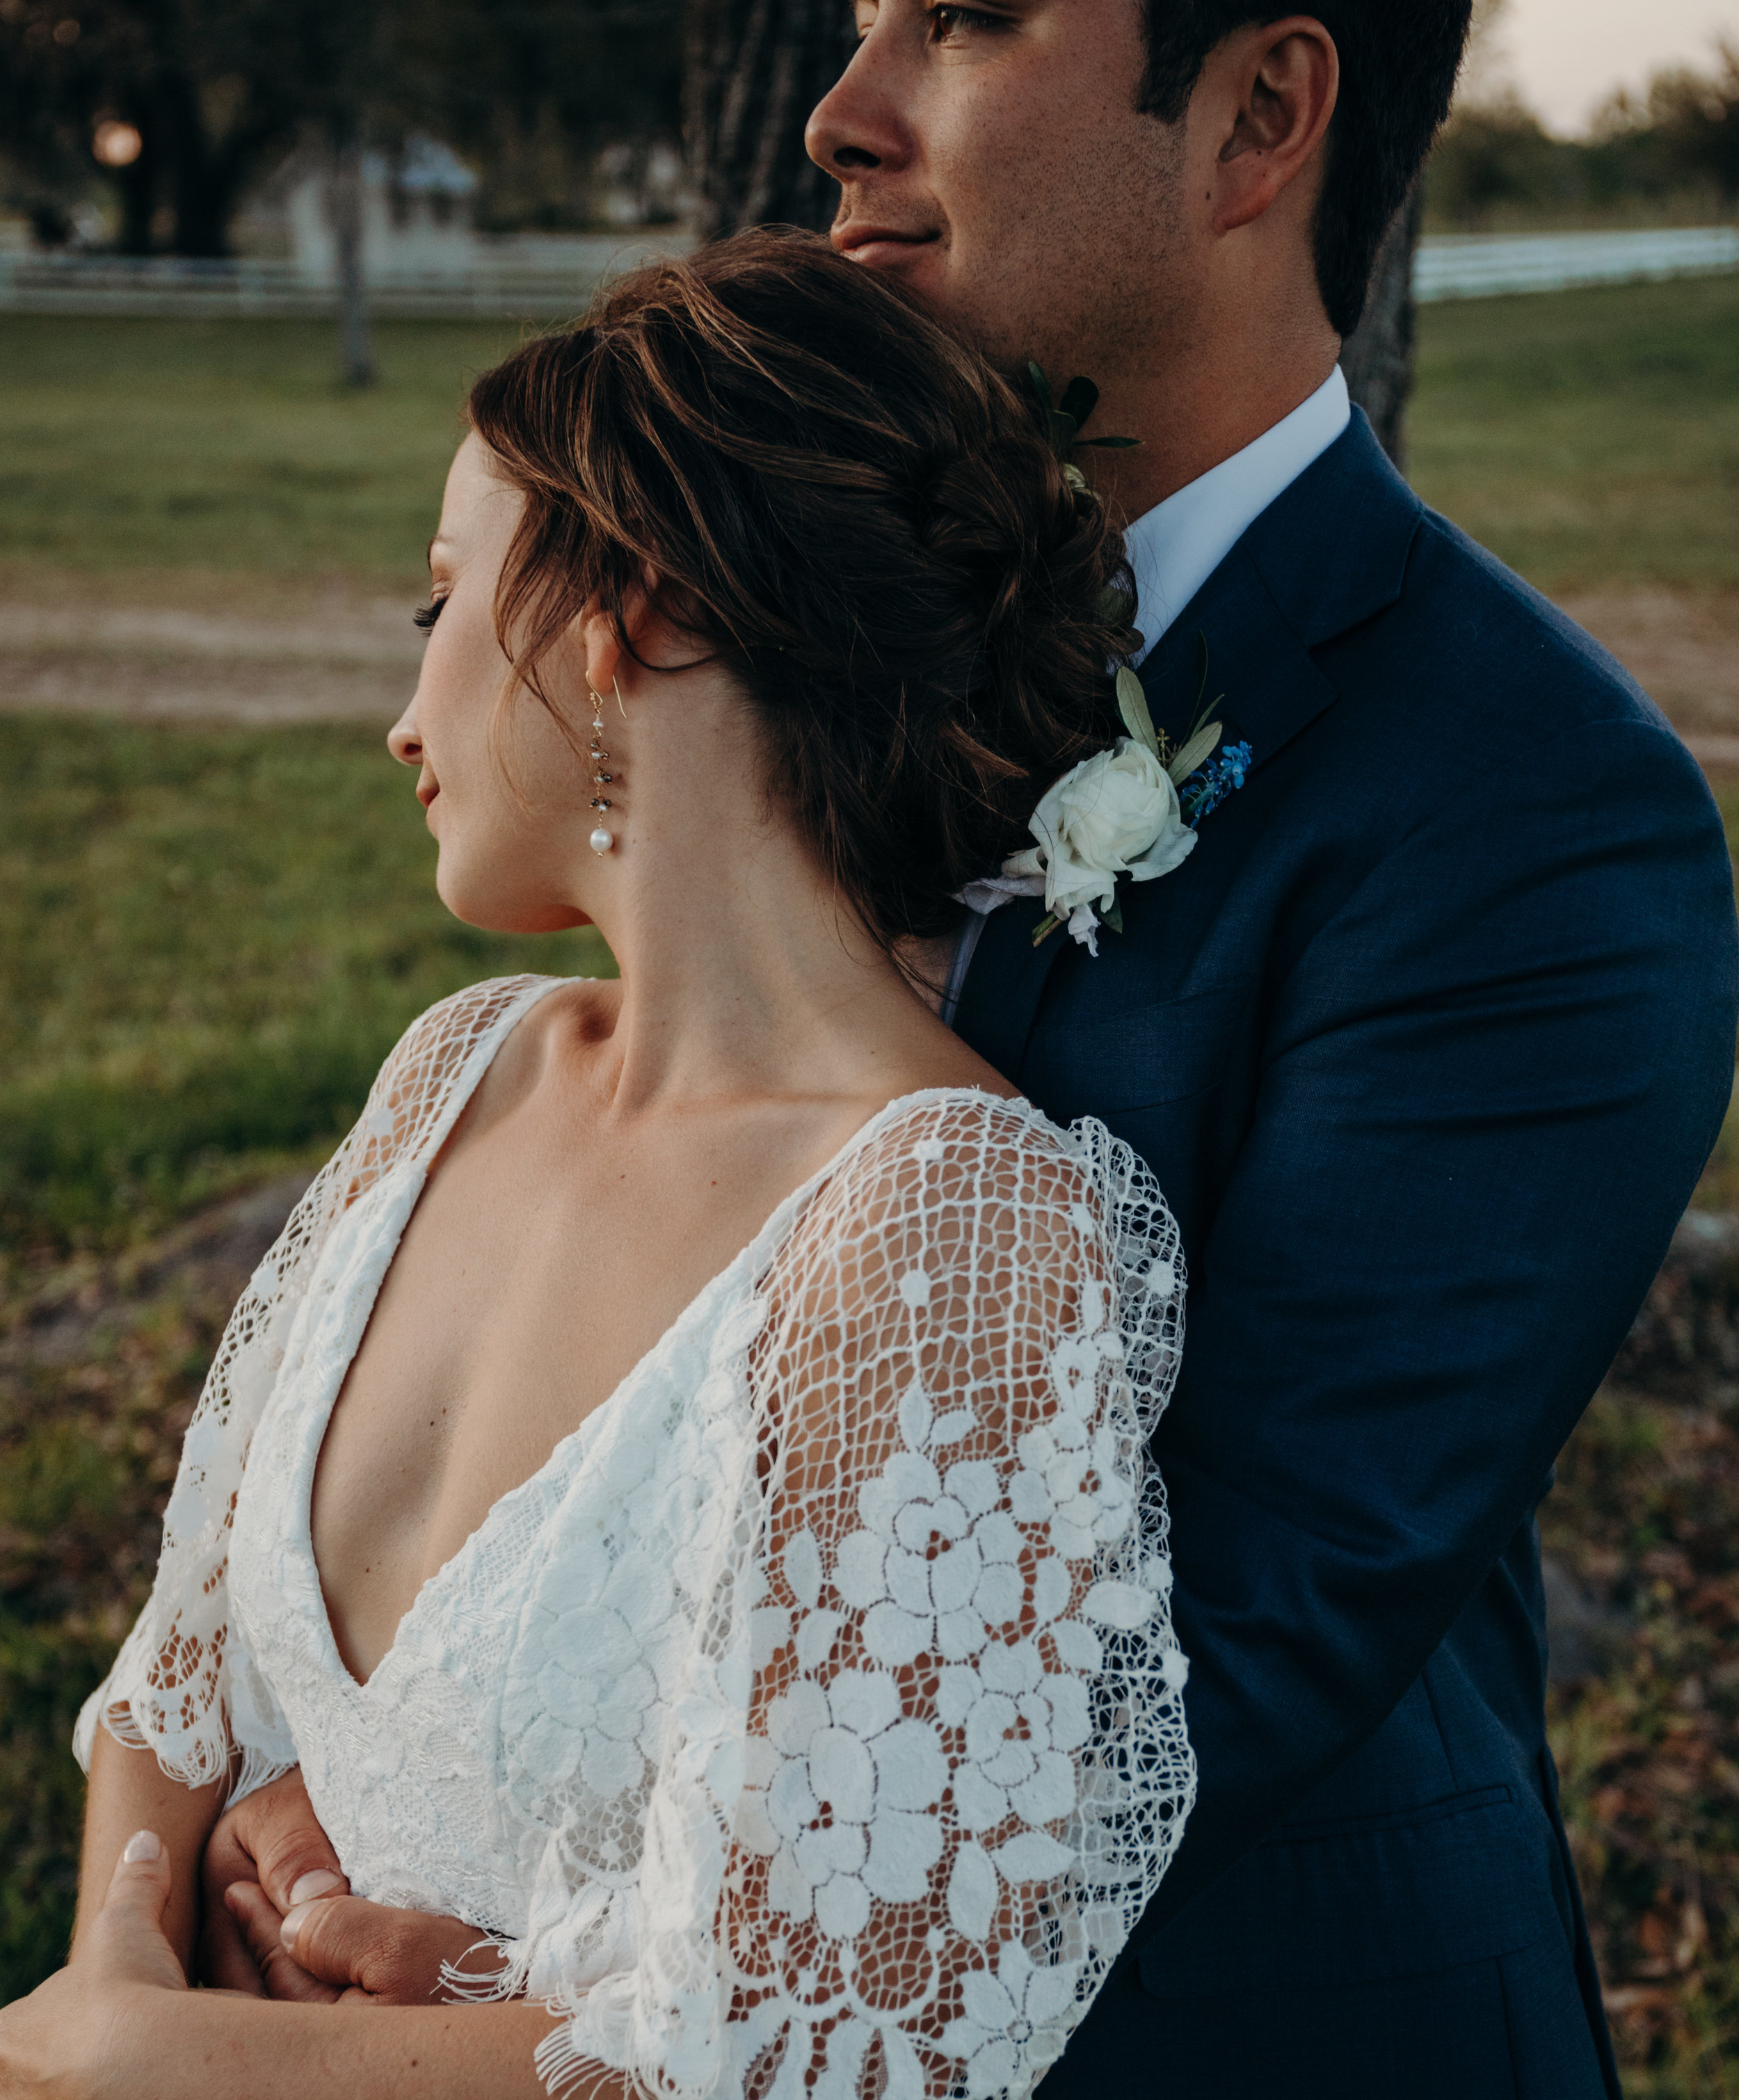 Couple Portraits   Wedding   Chris and Kristen   congaree and penn   Jacksonville florida  Documented by Vanessa Boy (216 of 32).jpg